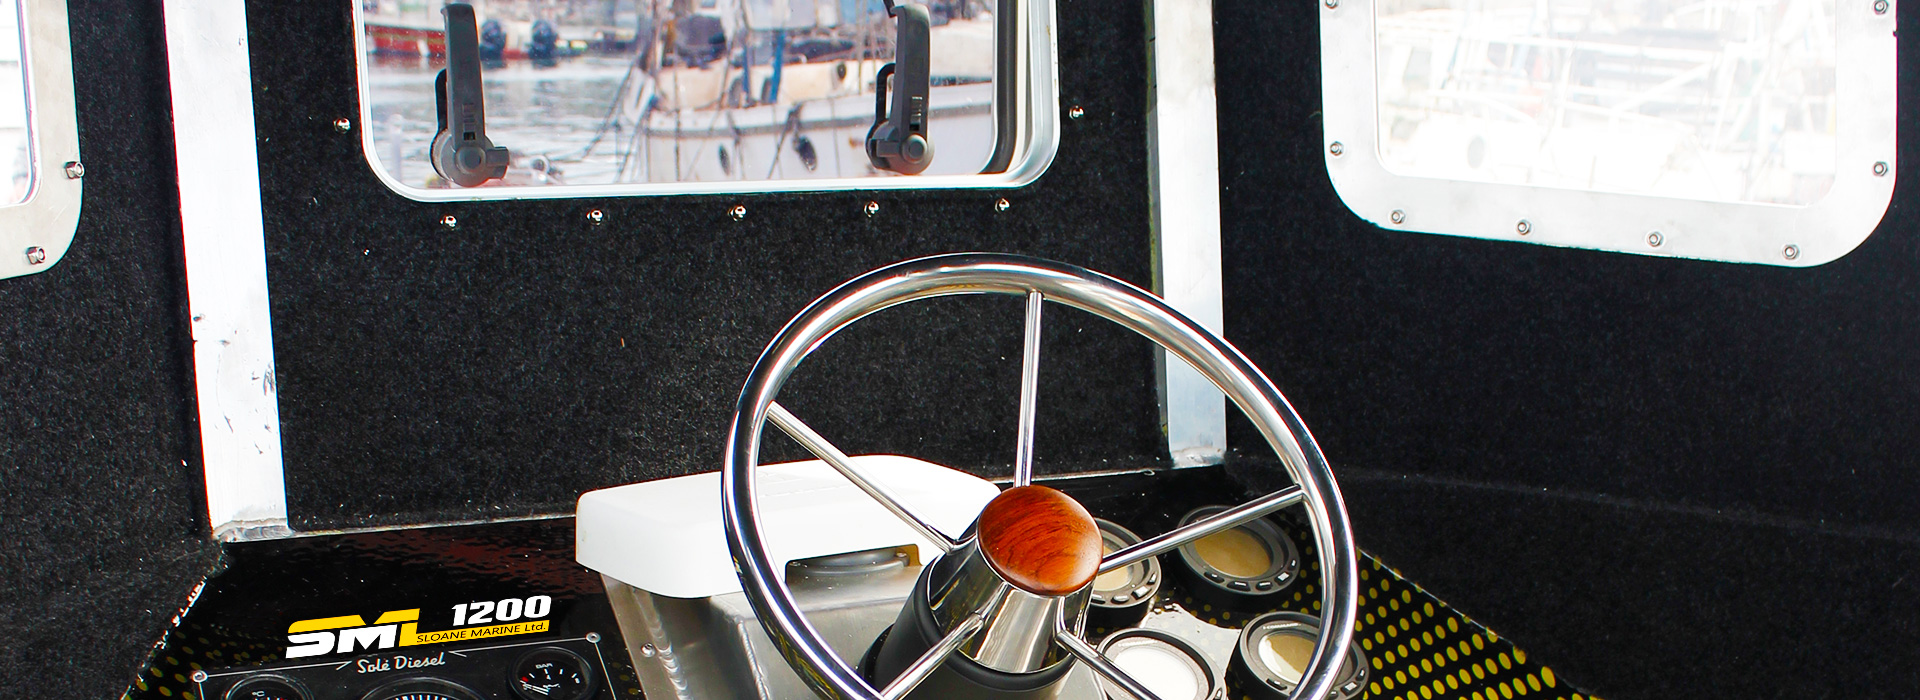 image showing the SML 1200 wheelhouse featuring its high visibility design